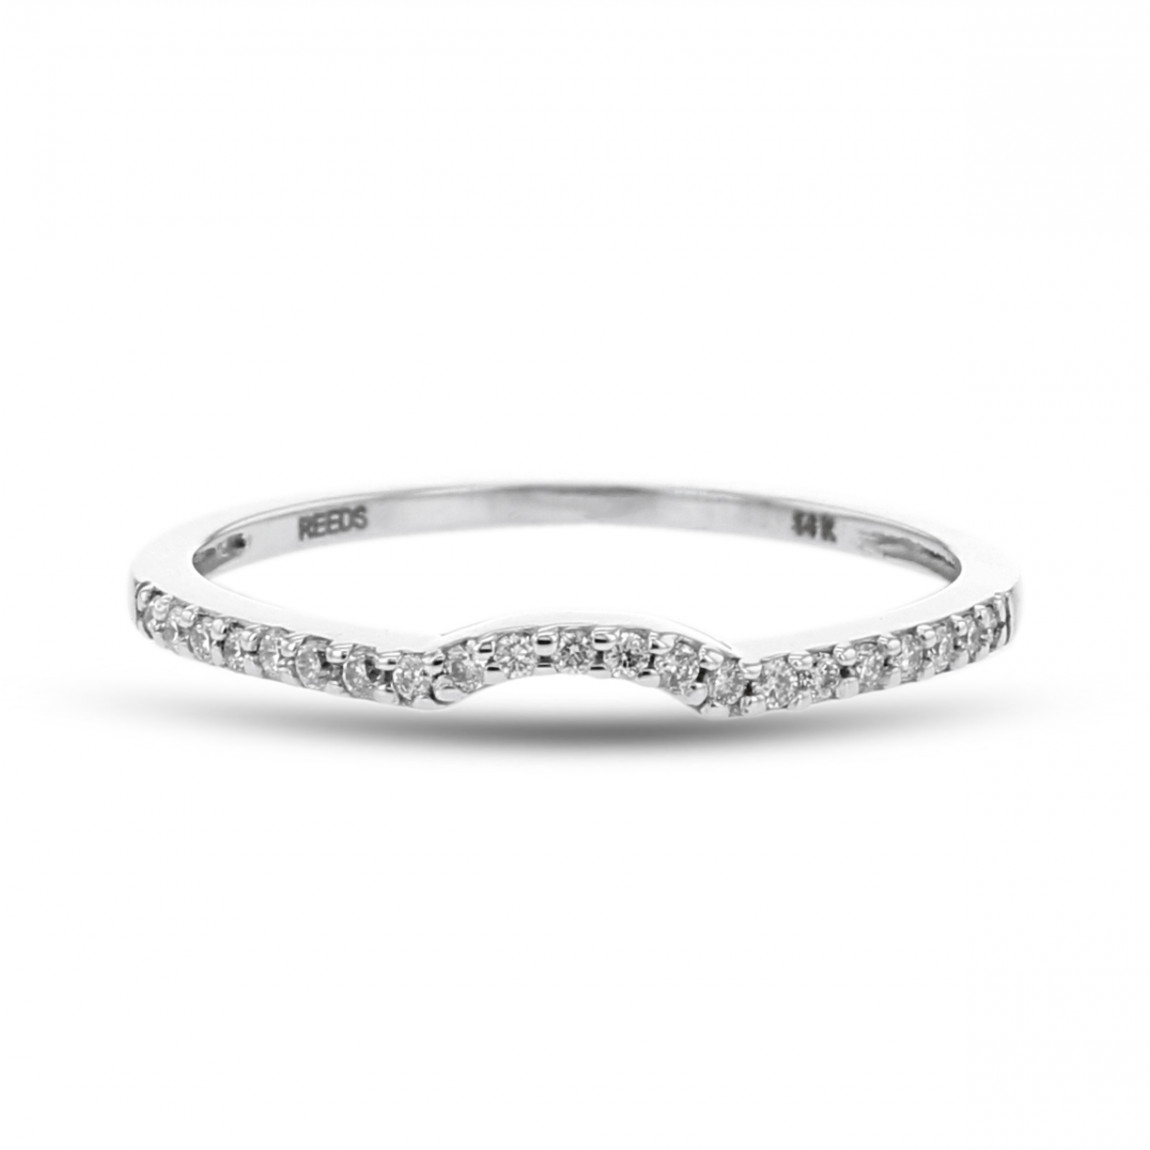 Diamond Petite Pavé Curved Wedding Band, 14k White Gold, (View 7 of 25)